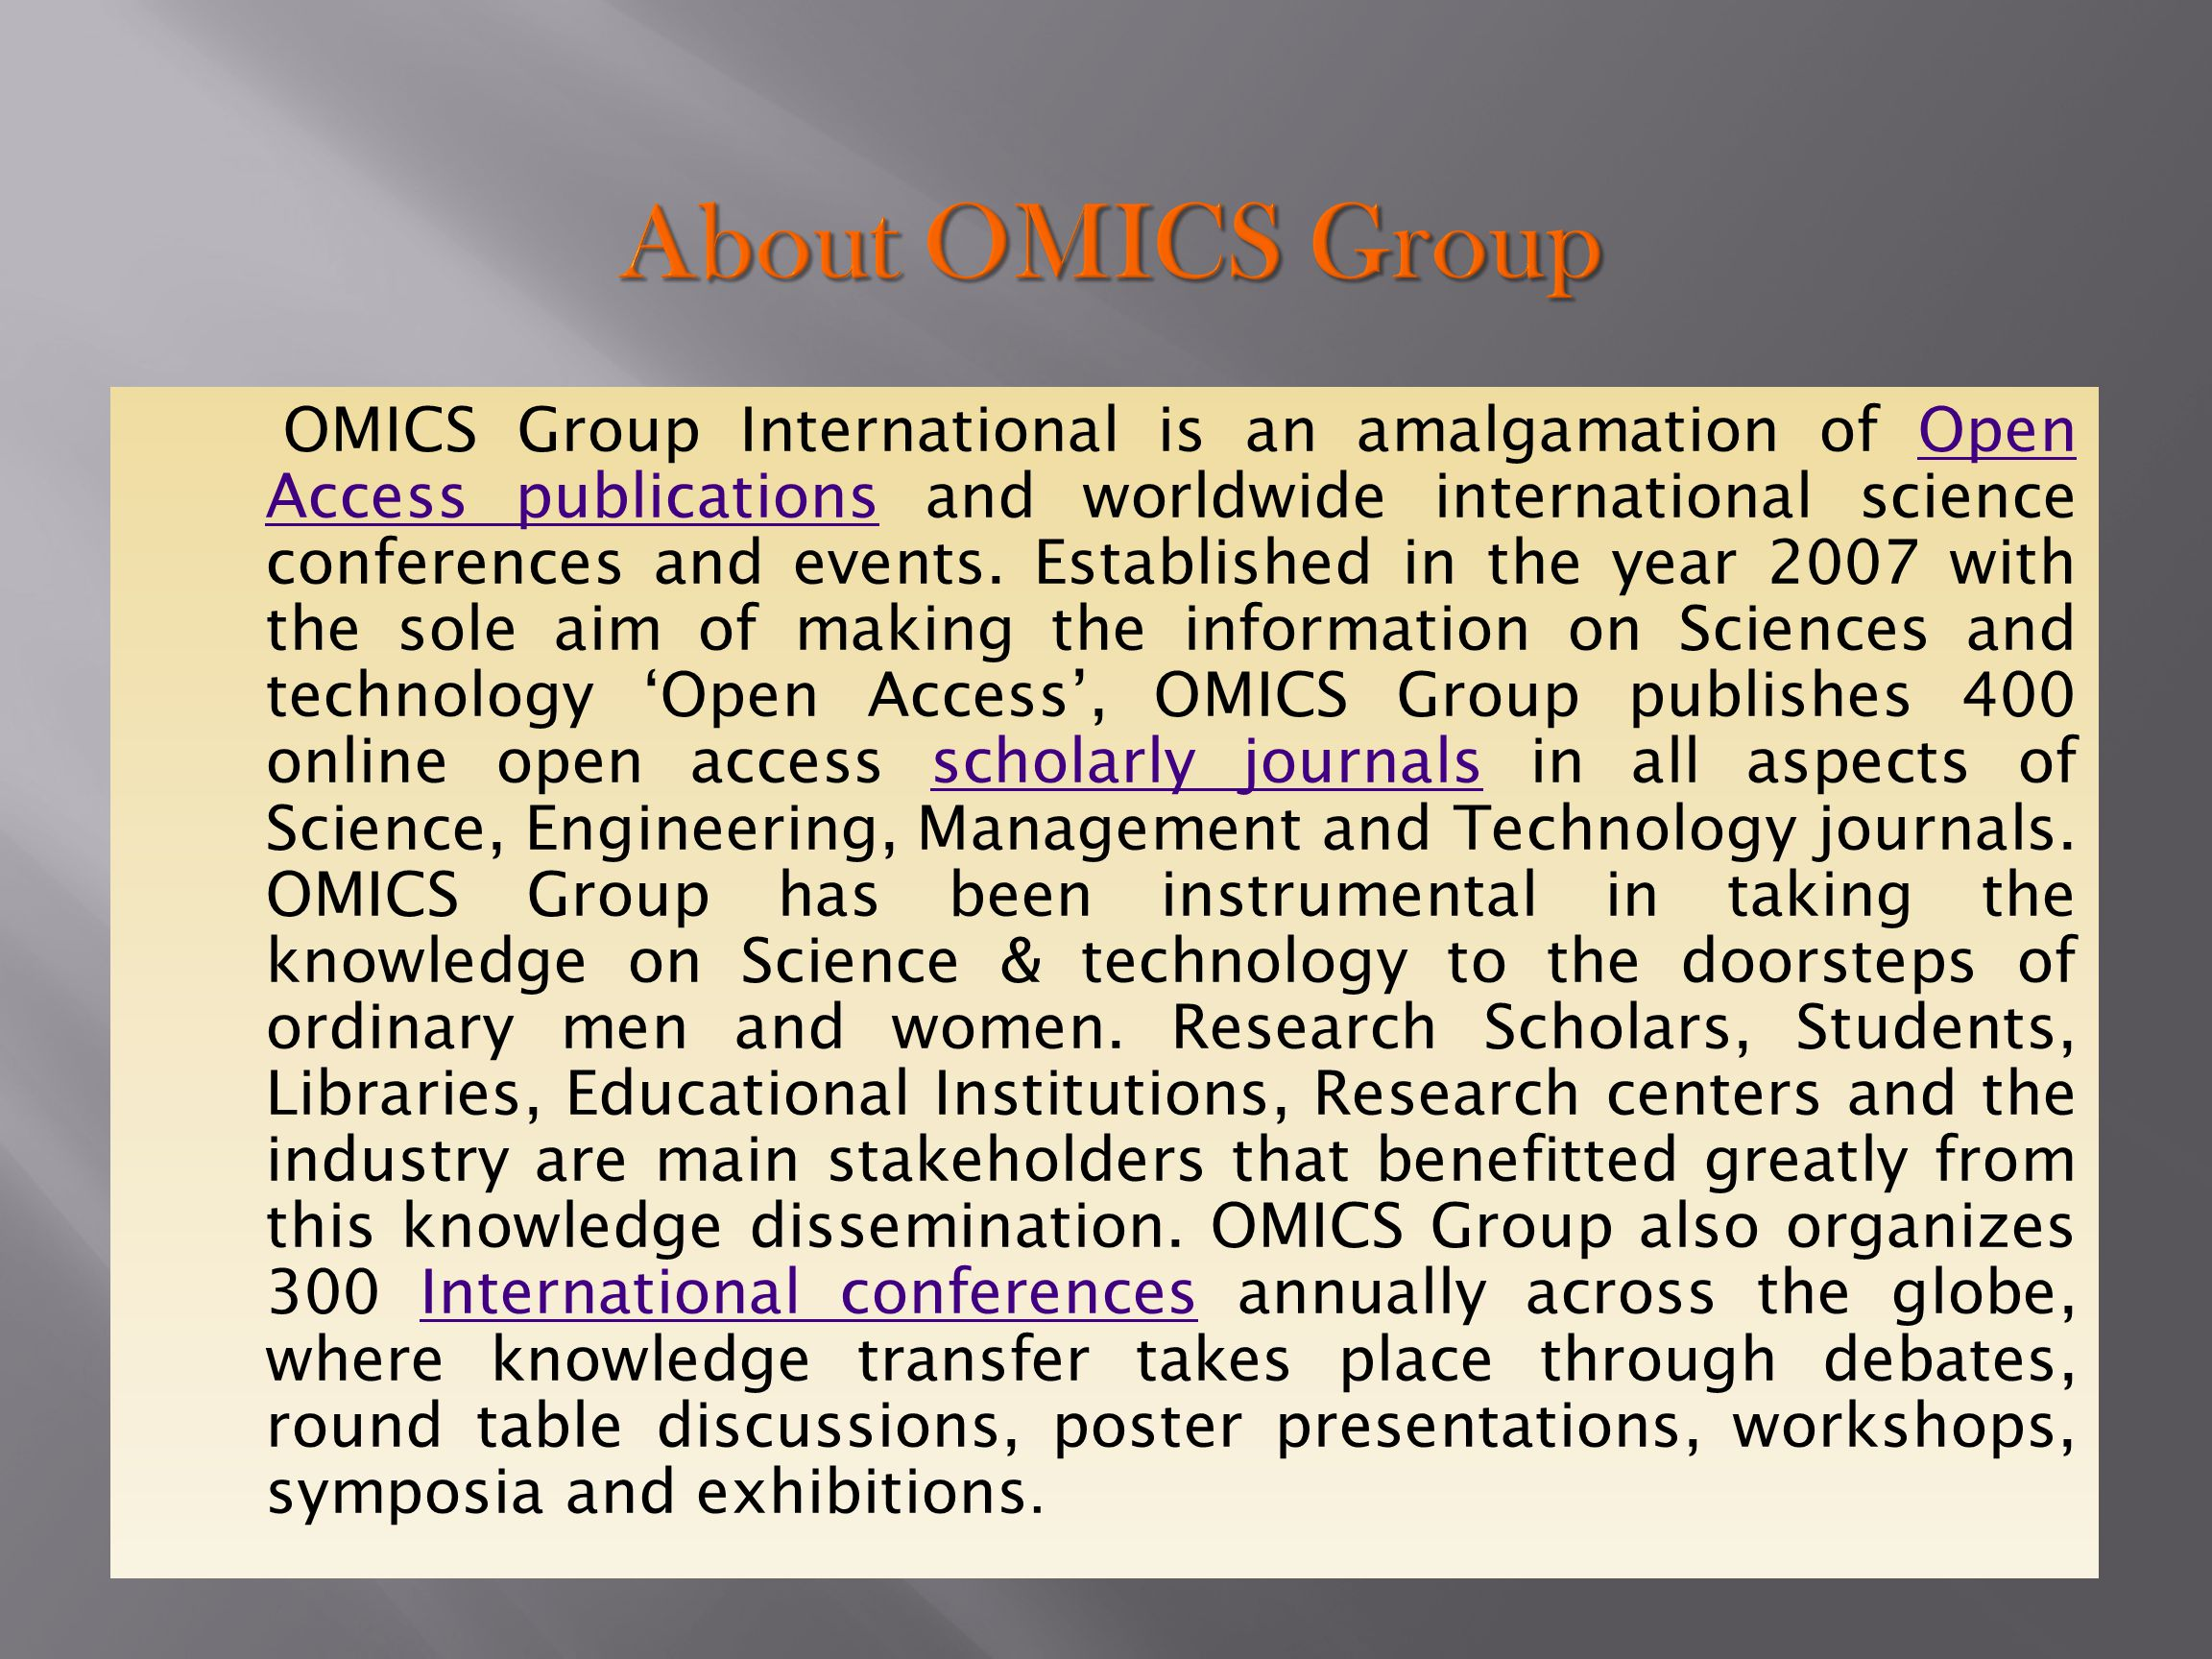 OMICS Group International is an amalgamation of Open Access publications and worldwide international science conferences and events.